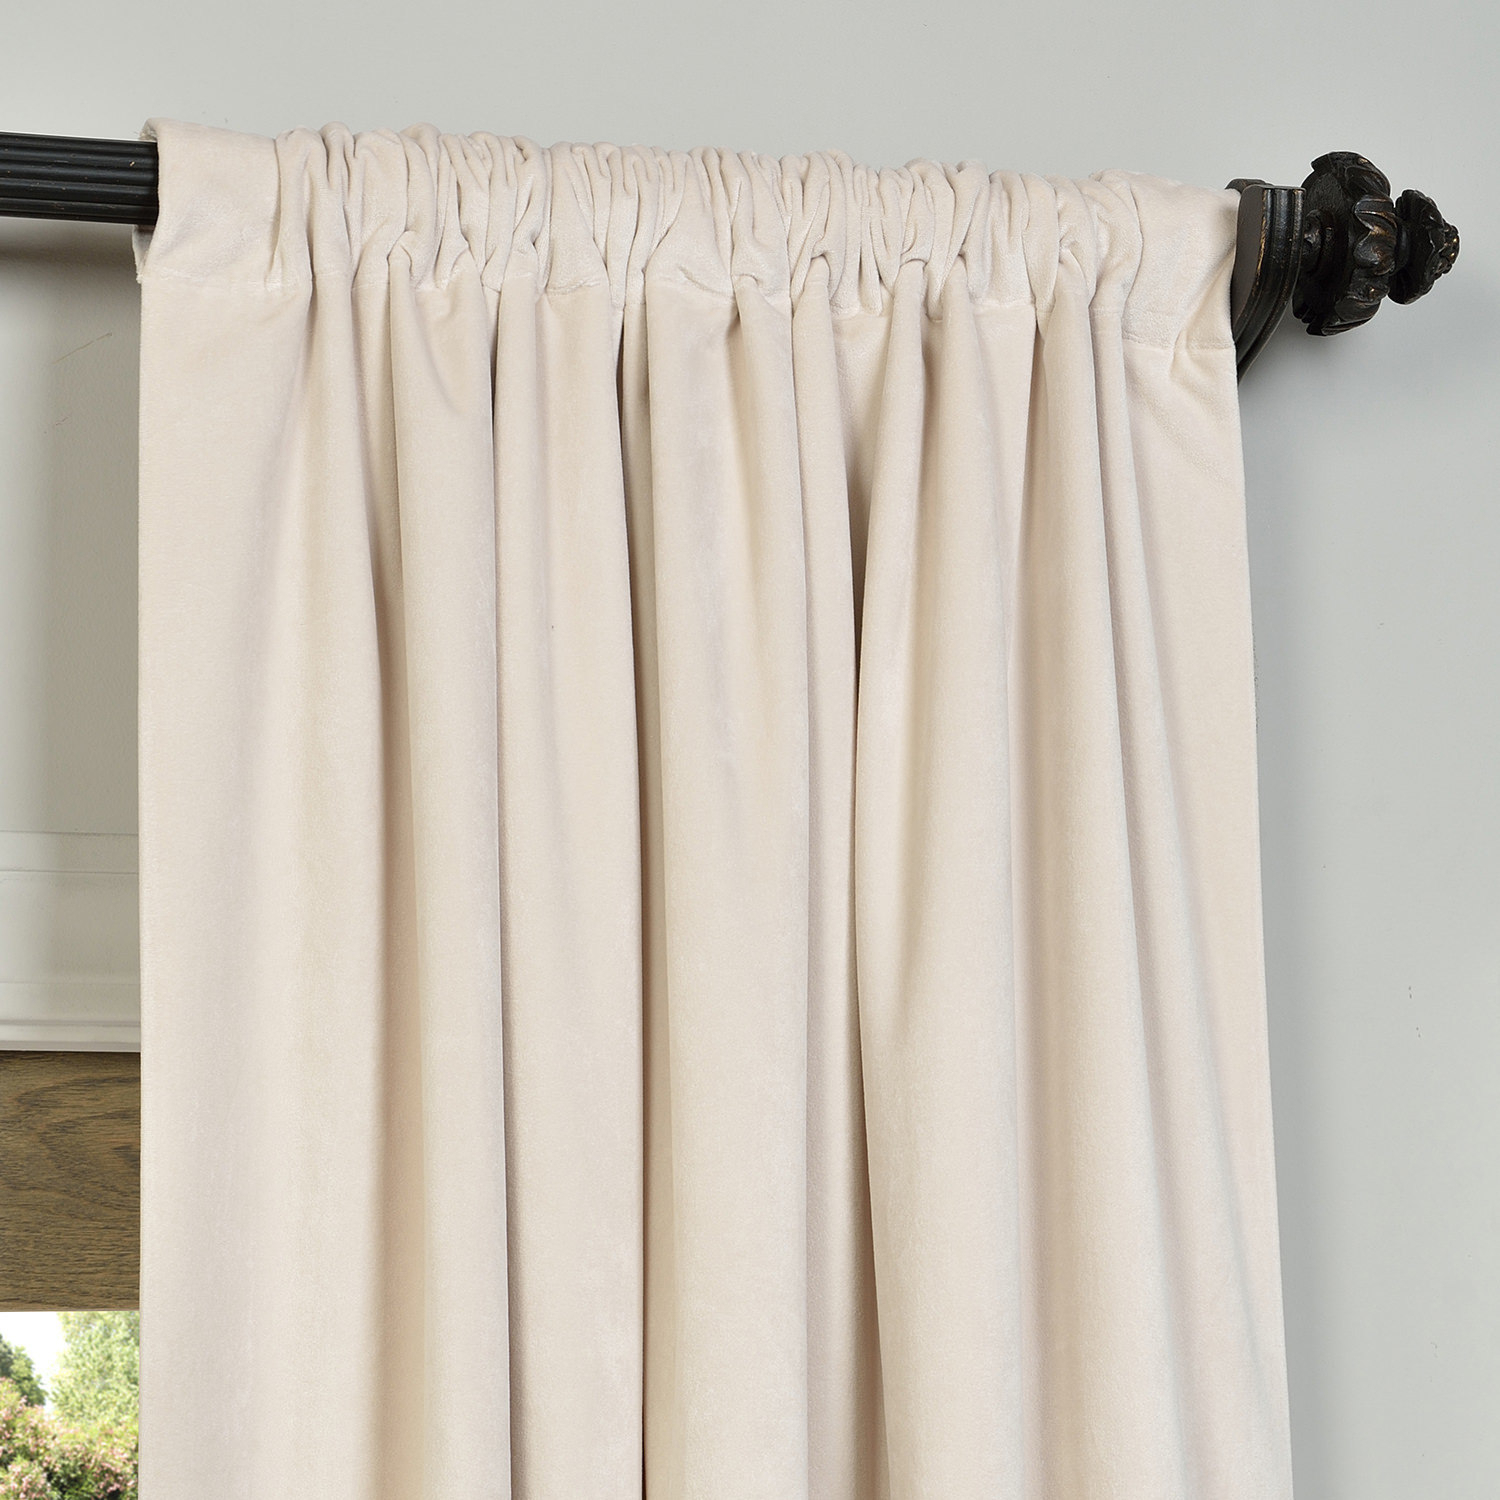 Half Price Drapes Vpch 194023 96 Signature Blackout Velvet Curtain, Midnight Blue Pertaining To Signature Blackout Velvet Curtains (View 14 of 20)